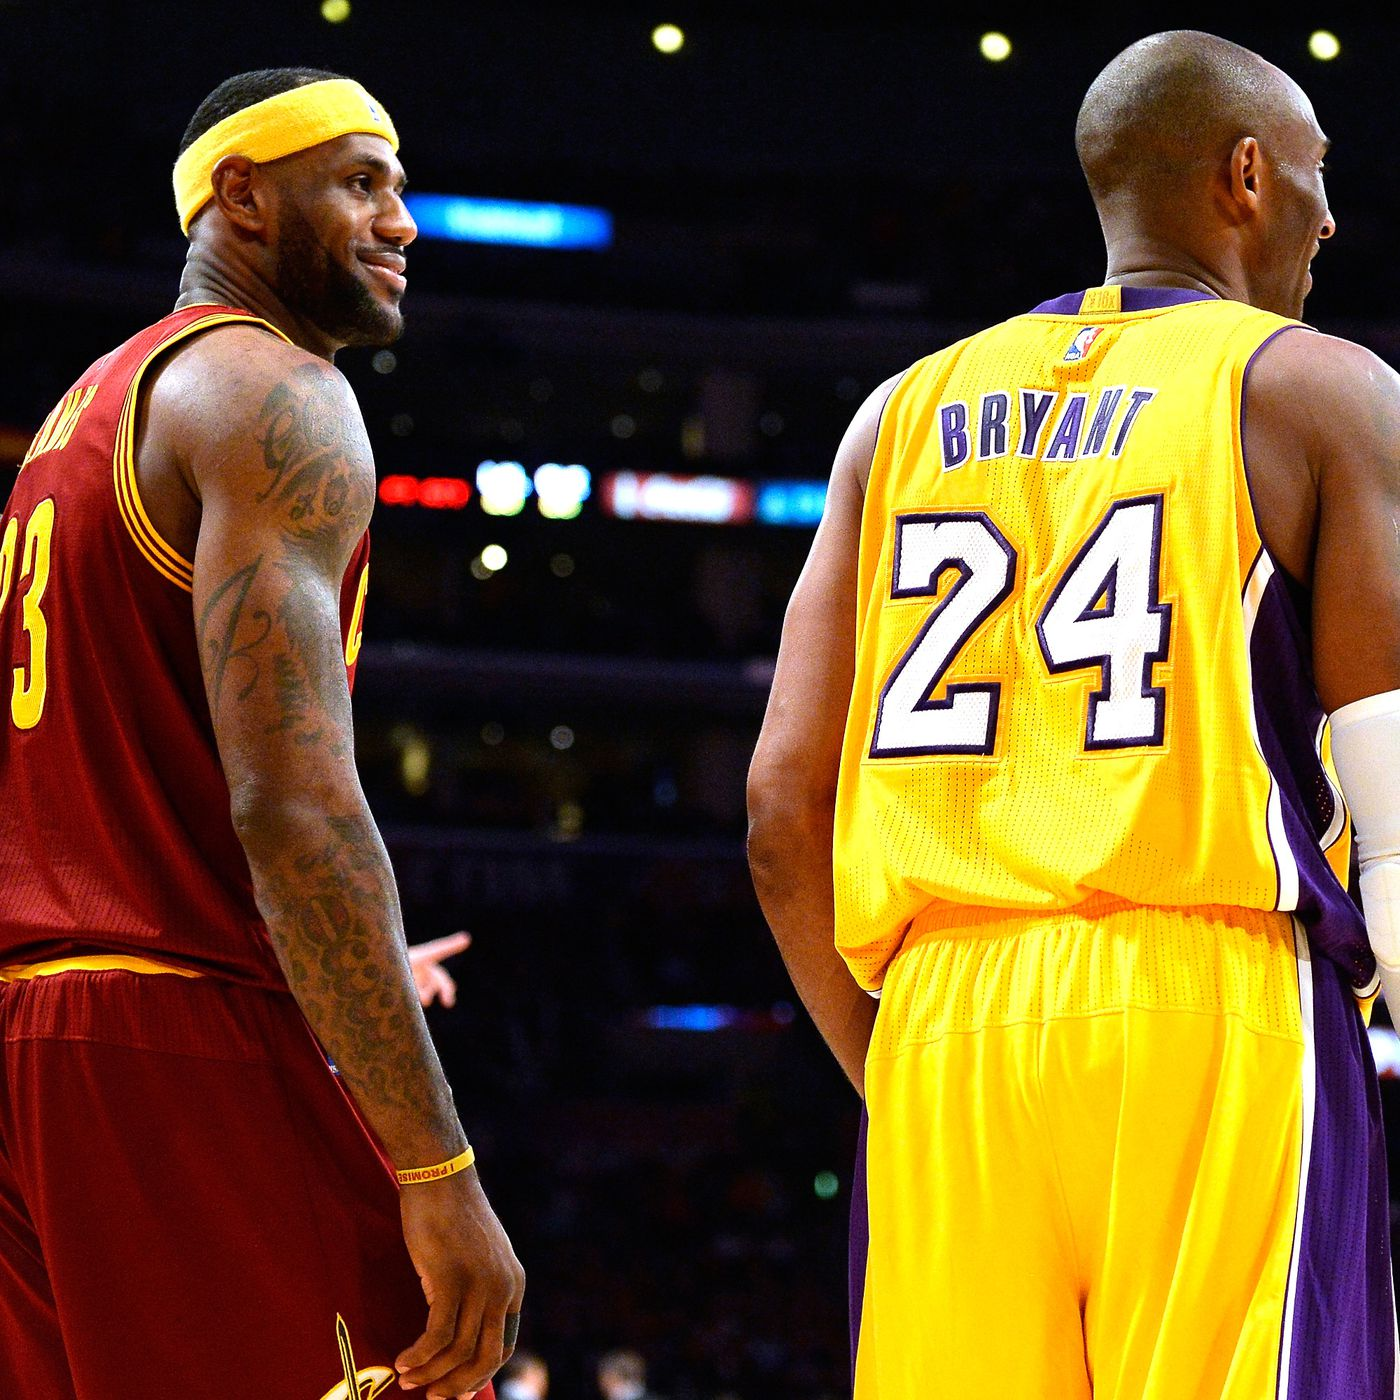 45274c7791f Nine years ago, the Lakers tried to trade Kobe Bryant for LeBron James